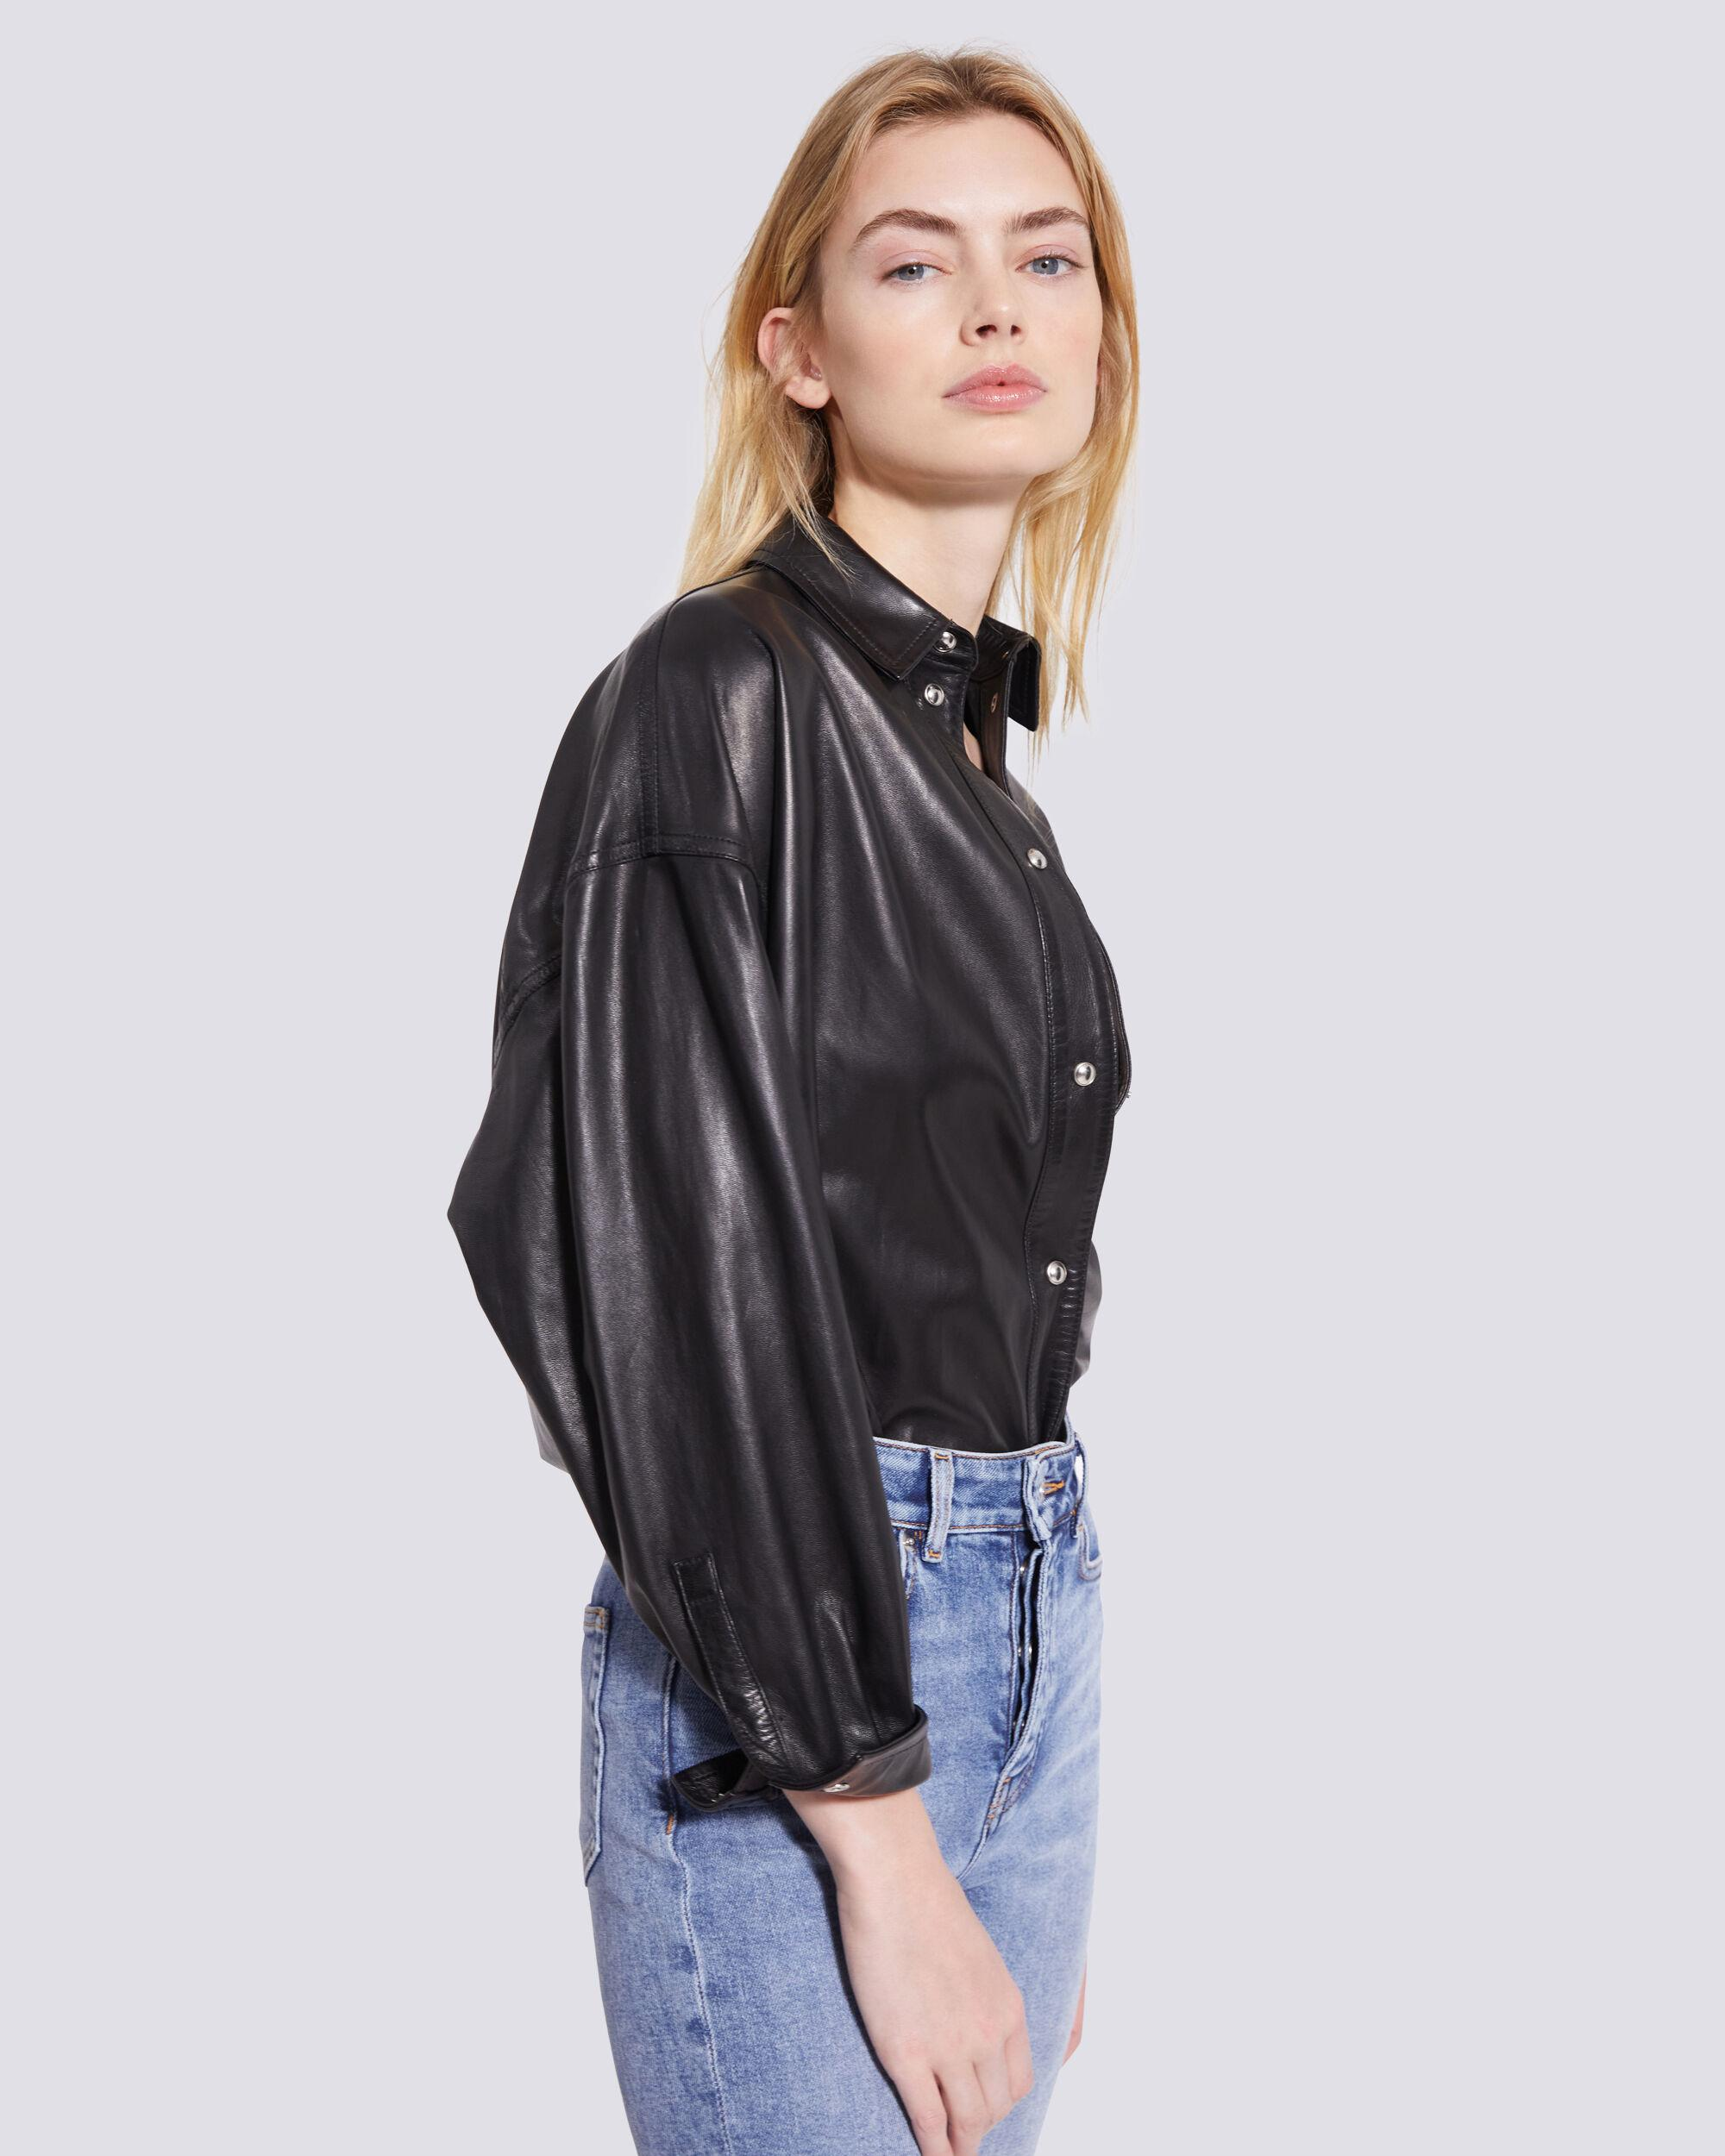 SYSTEM LEATHER BUTTON UP SHIRT 4